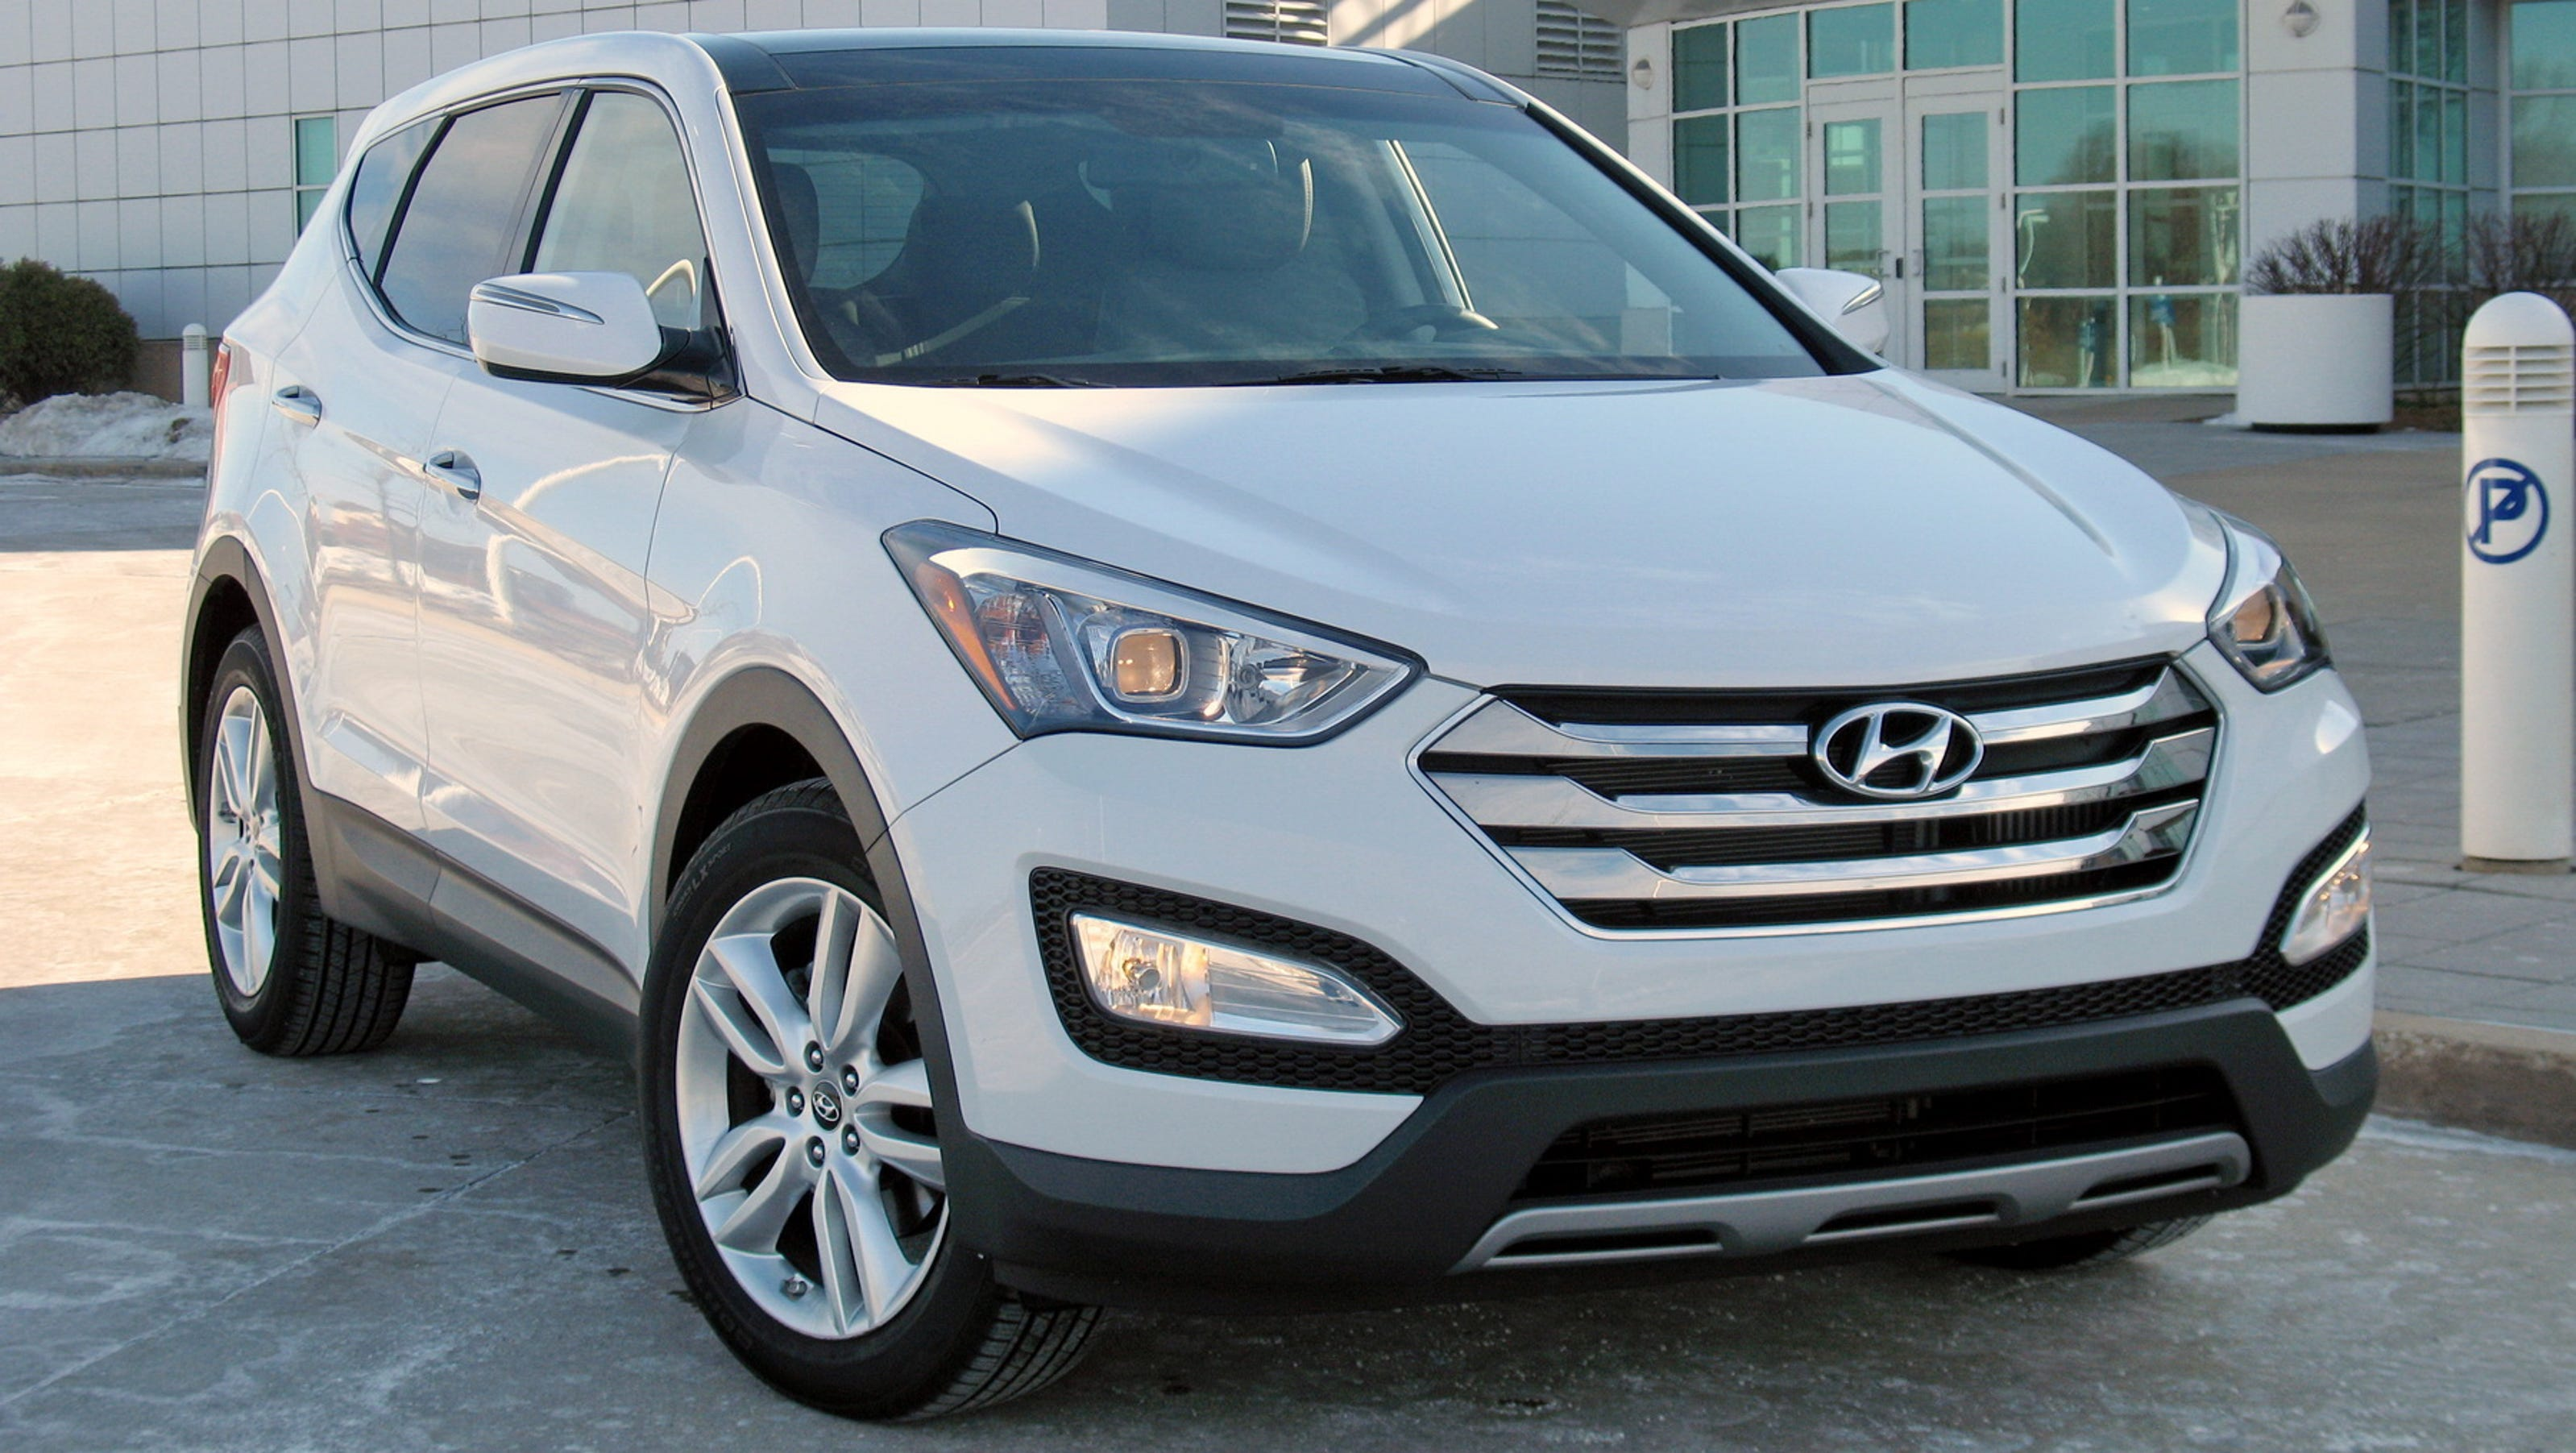 compact versatility 2014 hyundai santa fe sport suv. Black Bedroom Furniture Sets. Home Design Ideas